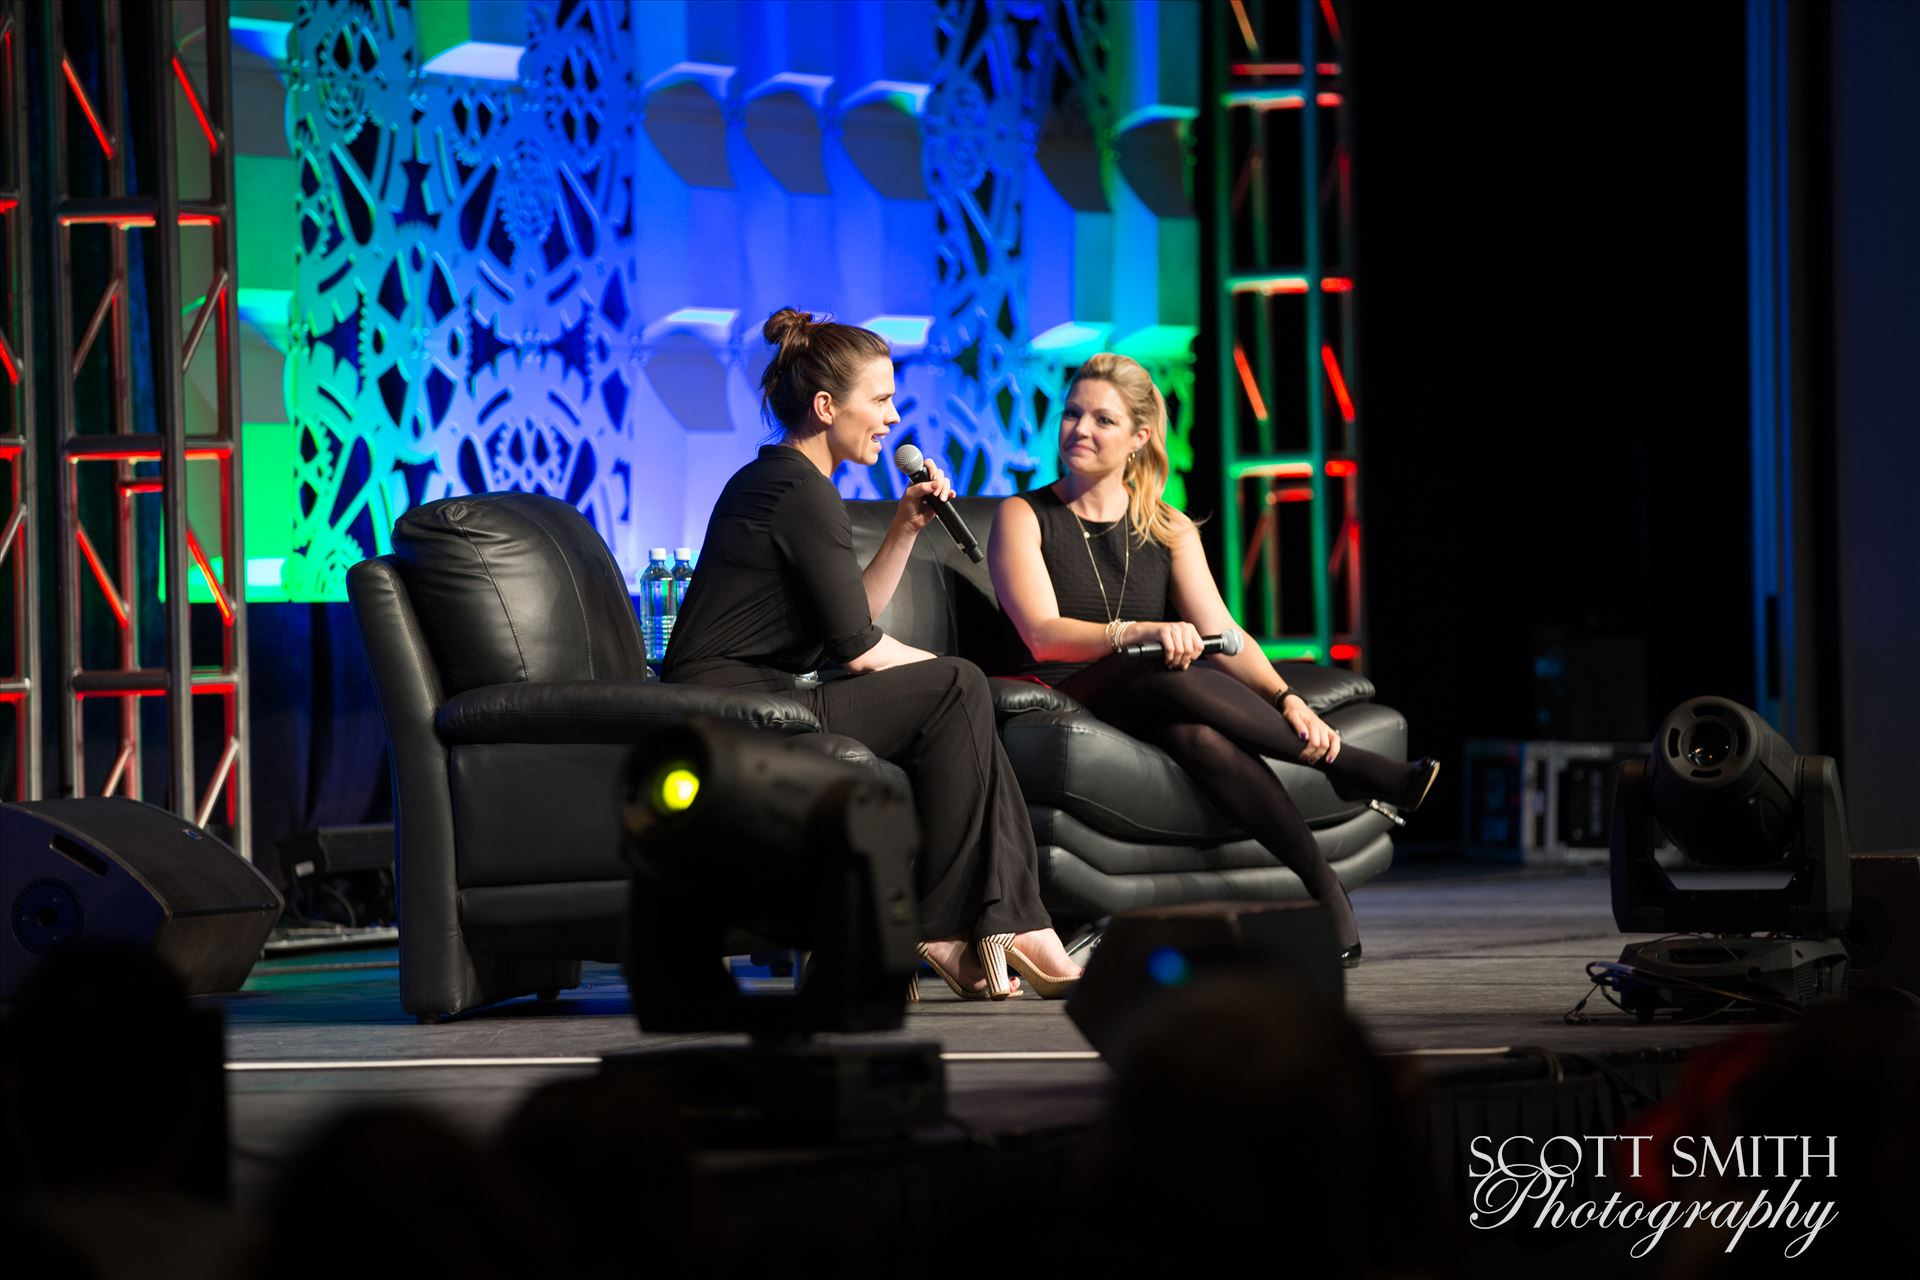 Denver Comic Con 2016 19 - Denver Comic Con 2016 at the Colorado Convention Center. Clare Kramer and Haley Atwell. by D Scott Smith